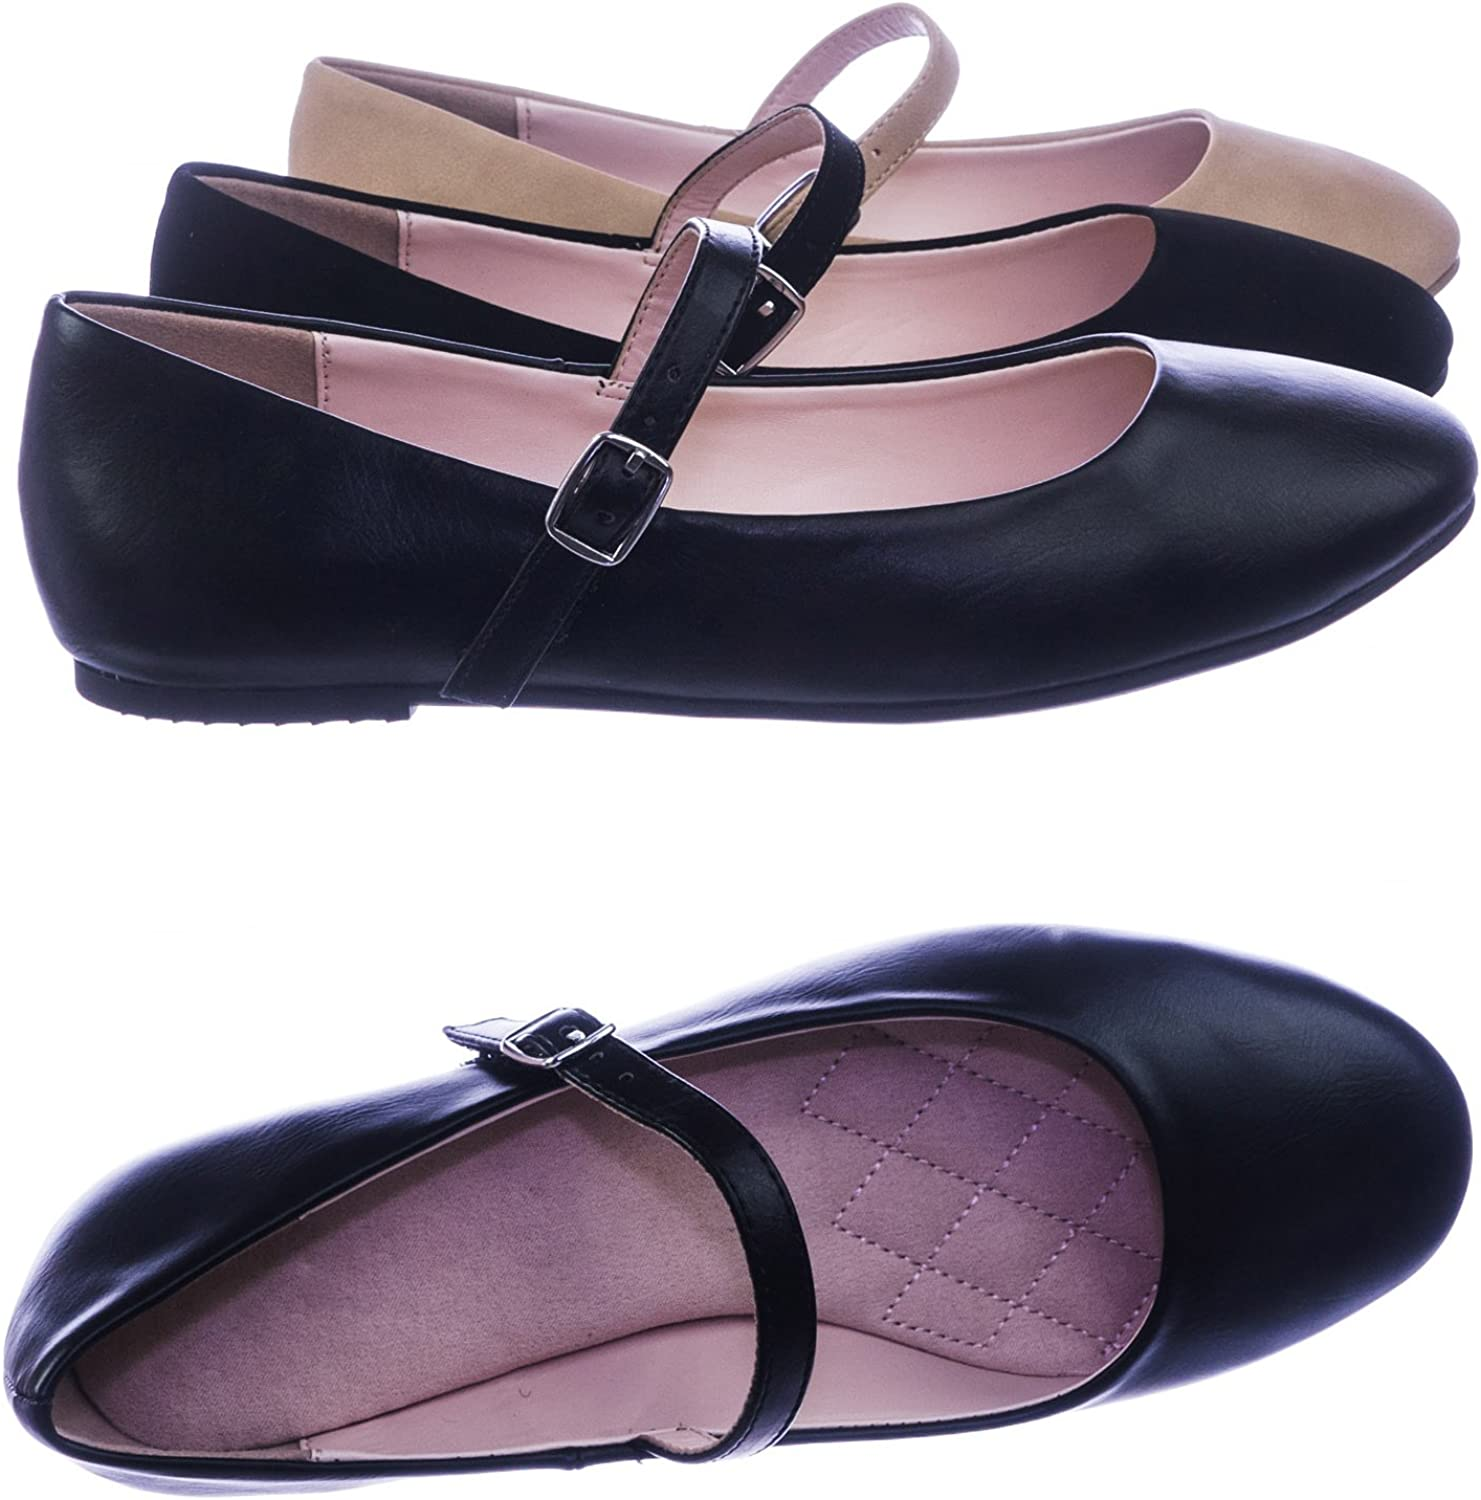 City Classified Comfort Women Comfortable Padded Mary-Jane Round Toe Ballet Ballarina Flats